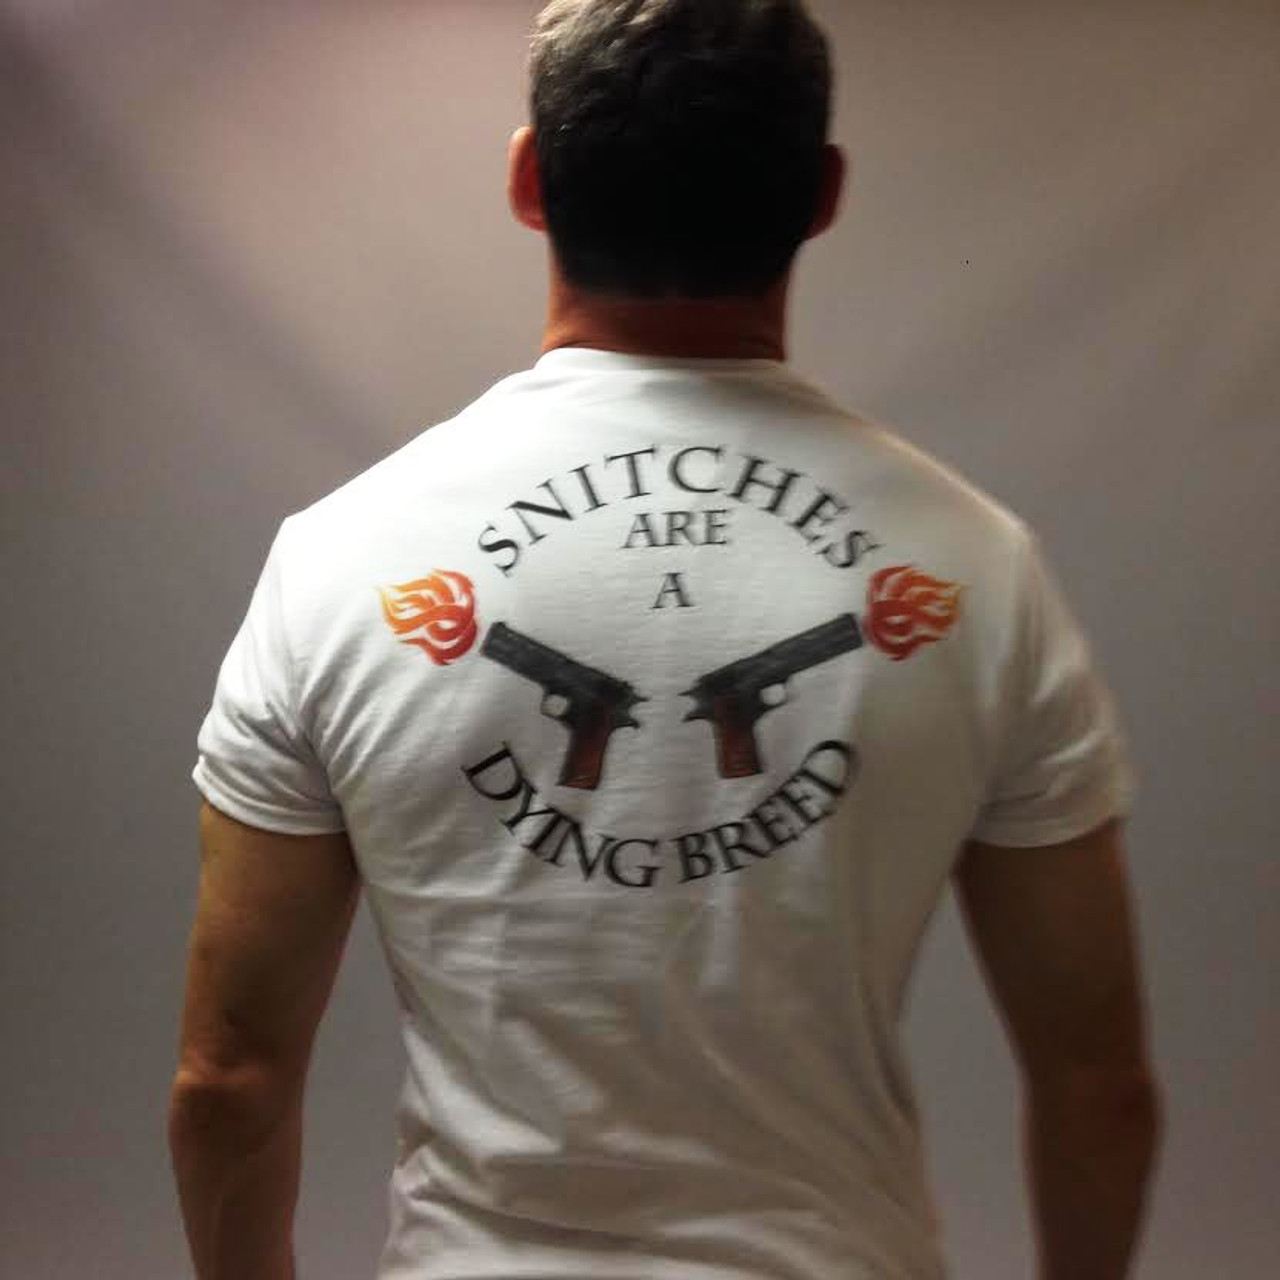 Snitches are a dying breed guns biker style  T Shirt